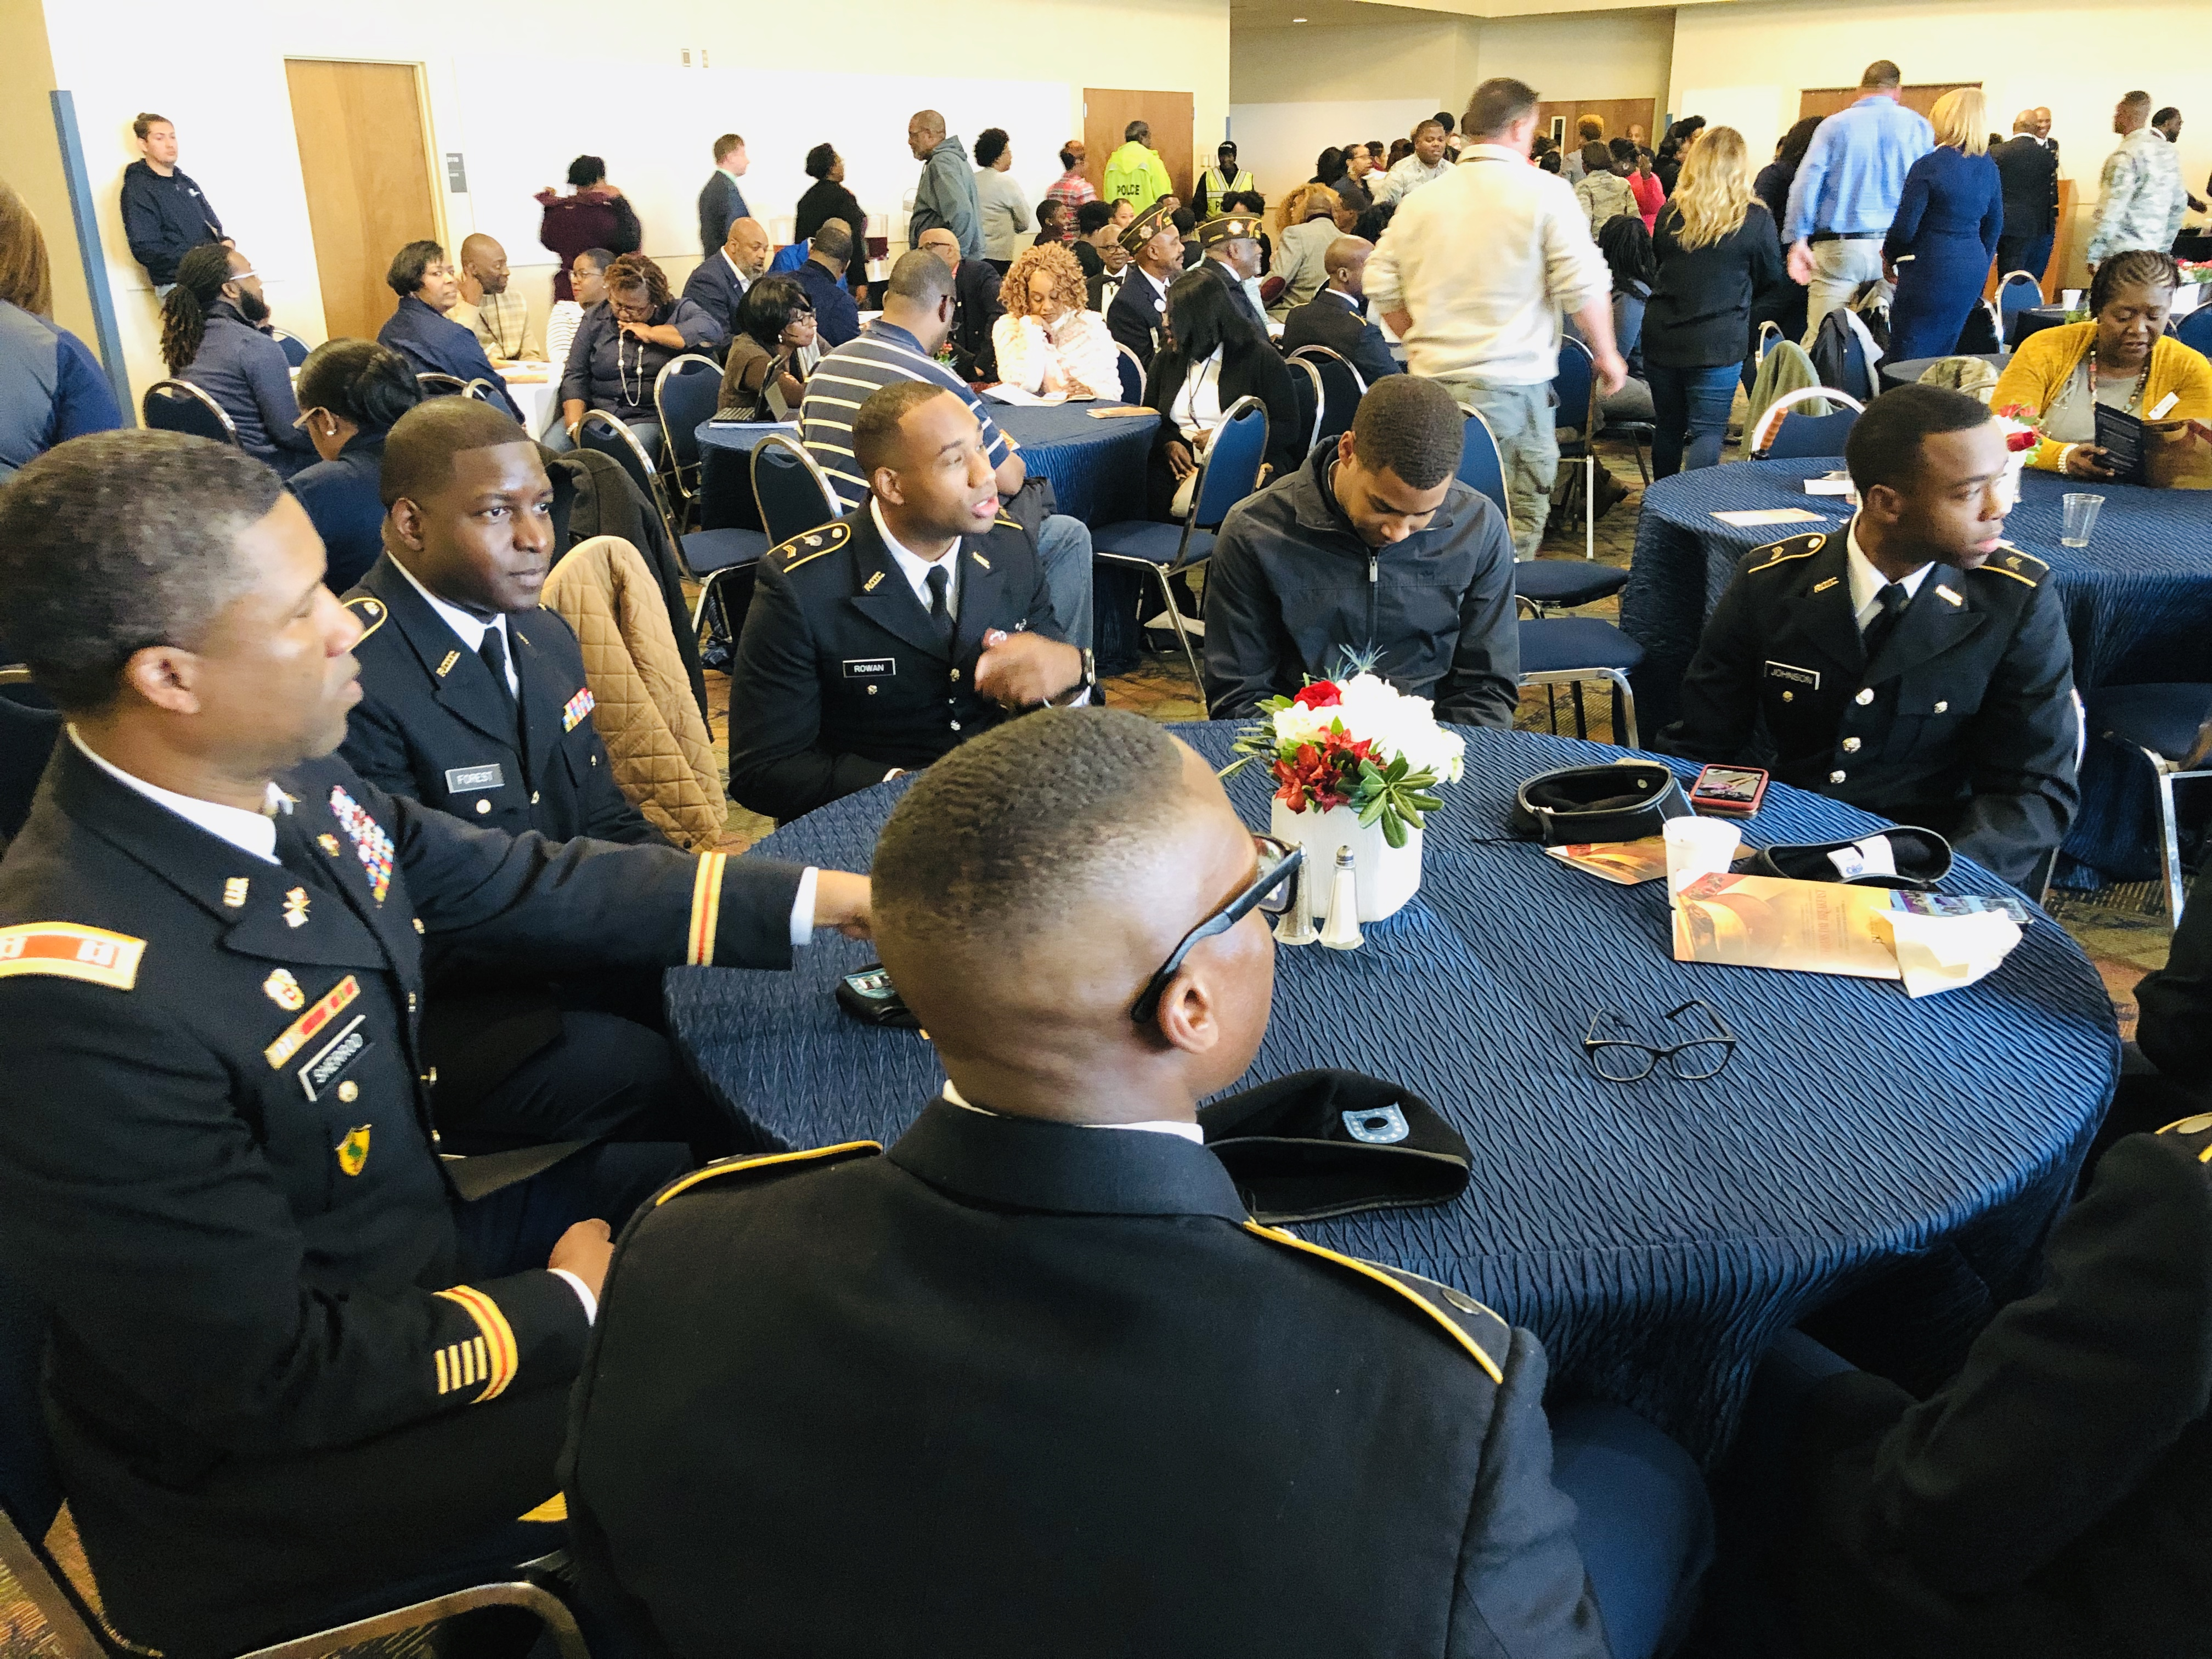 JSU cadets and other military personnel prepare for the start of the ceremony recognizing veterans and active duty service members. (Photo by L.A. Warren/JSU)